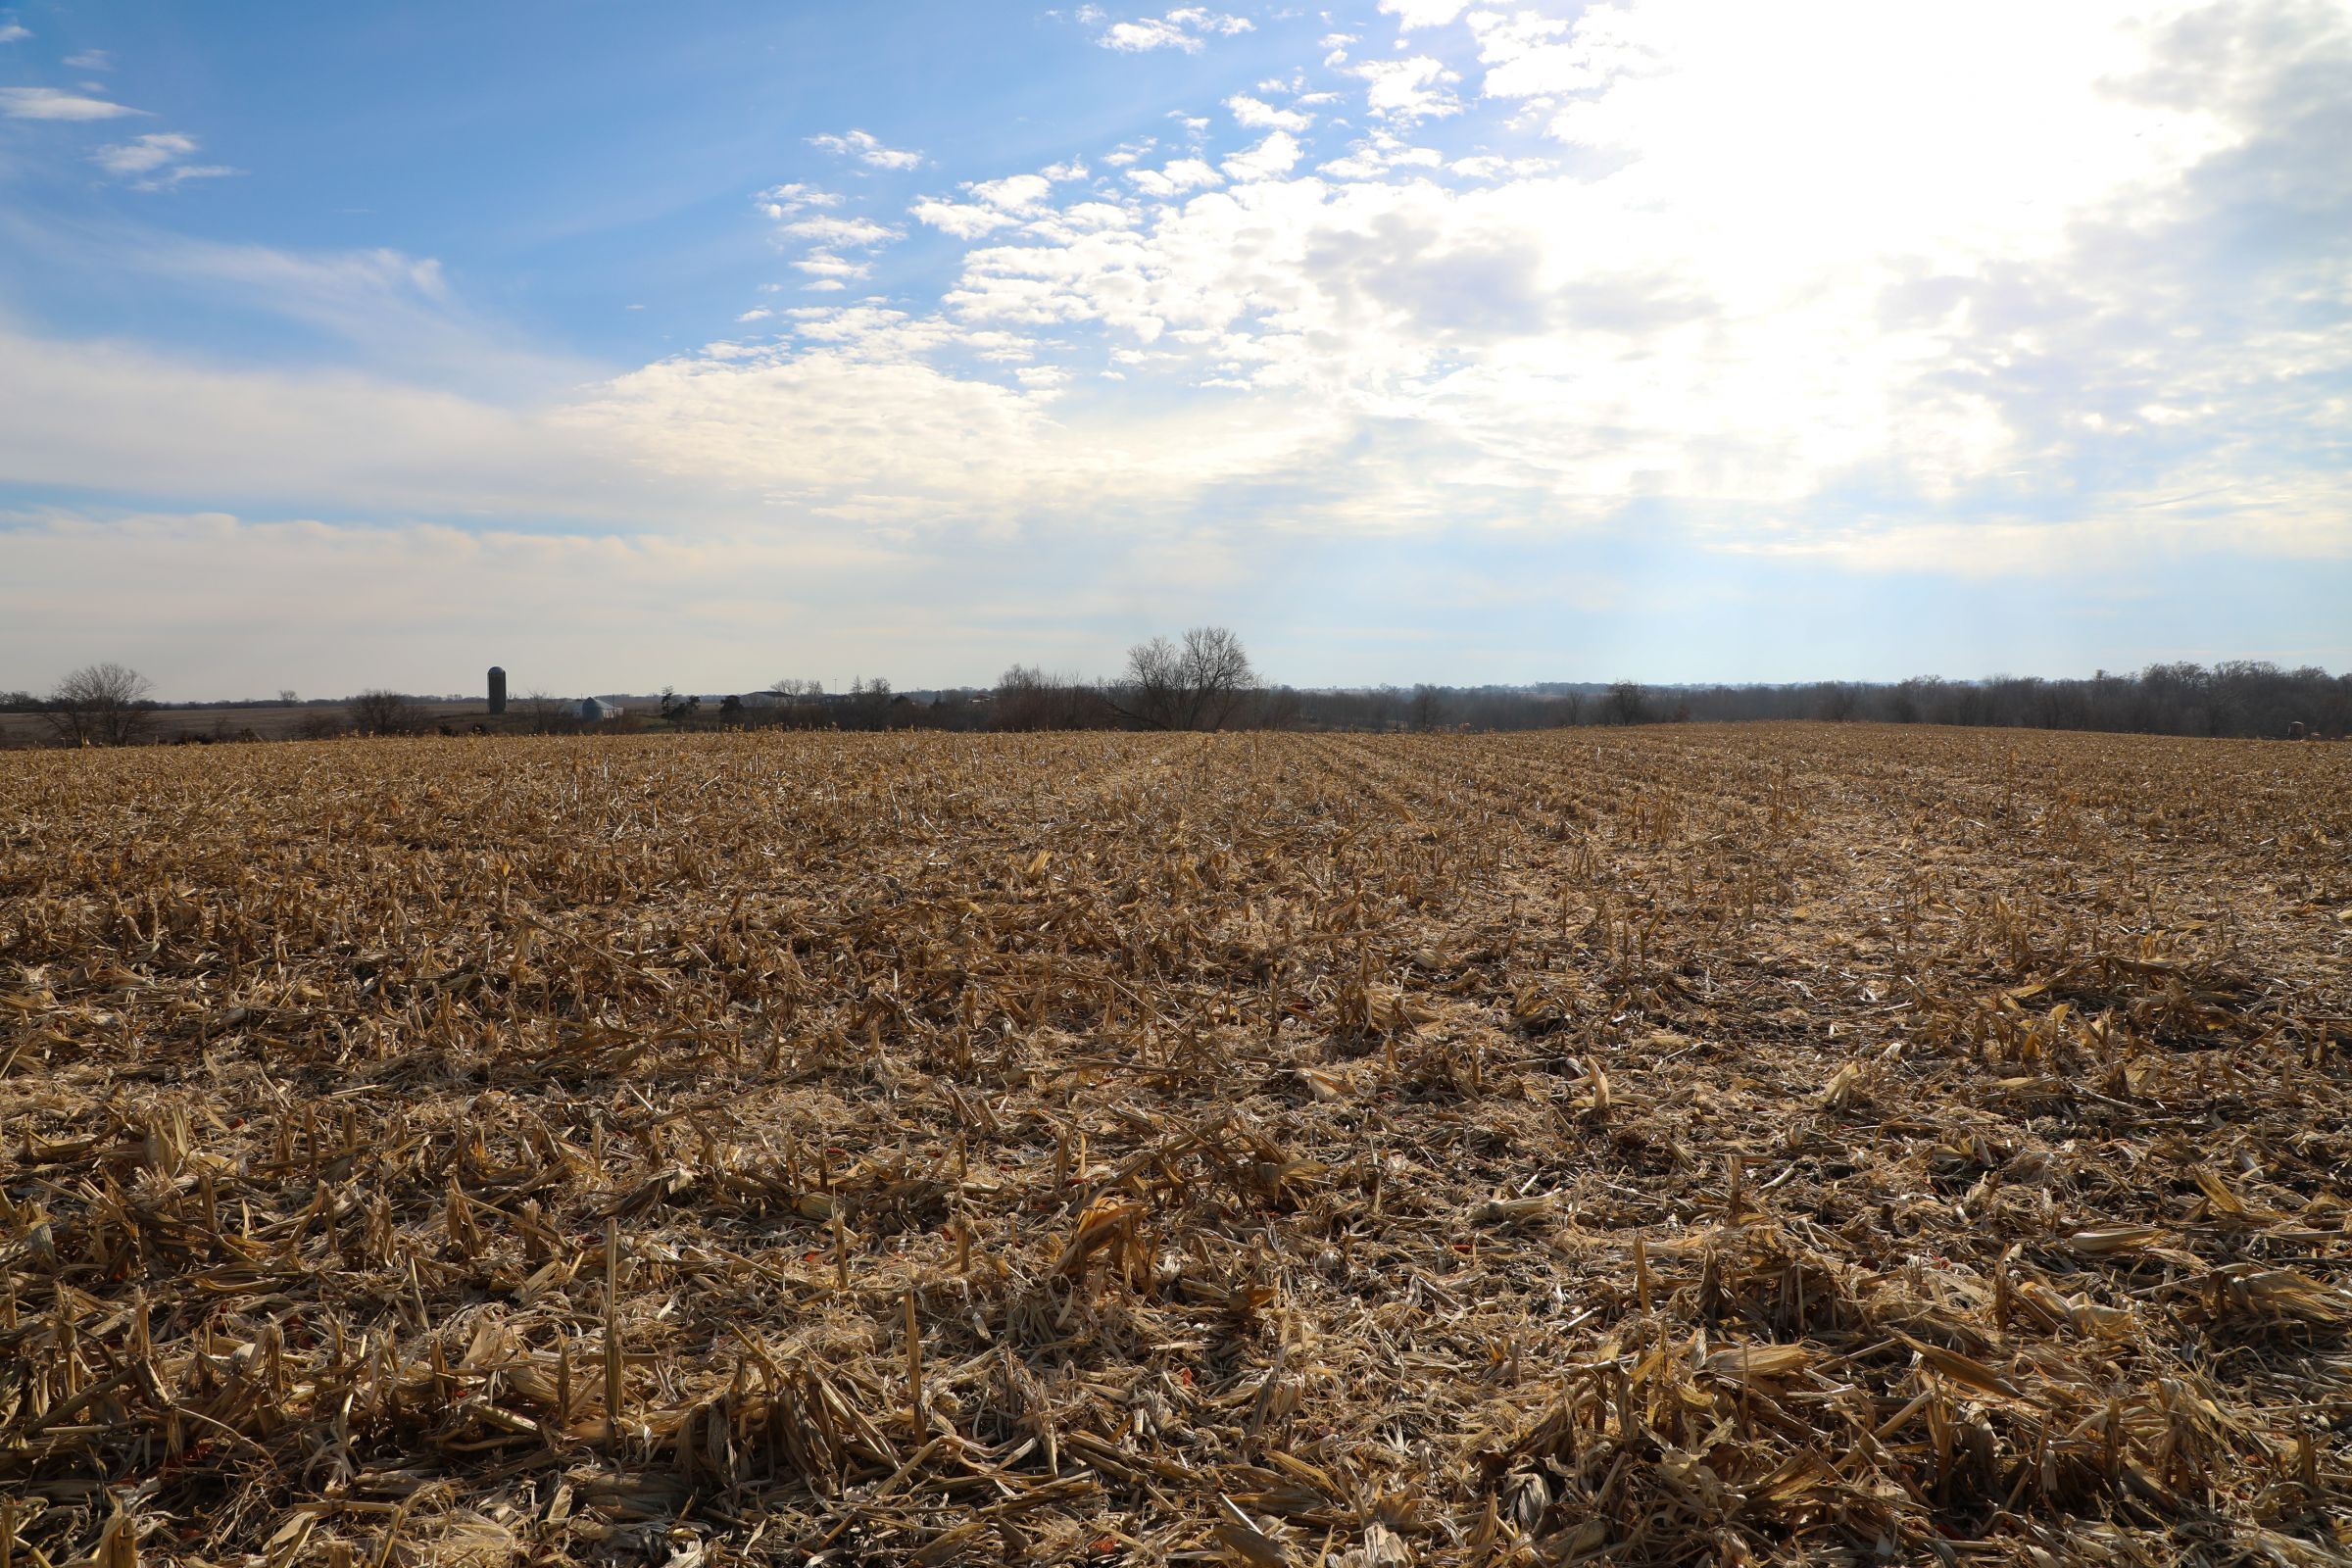 appanoose-county-iowa-37-acres-listing-number-15307-0-2020-12-24-154015.jpg